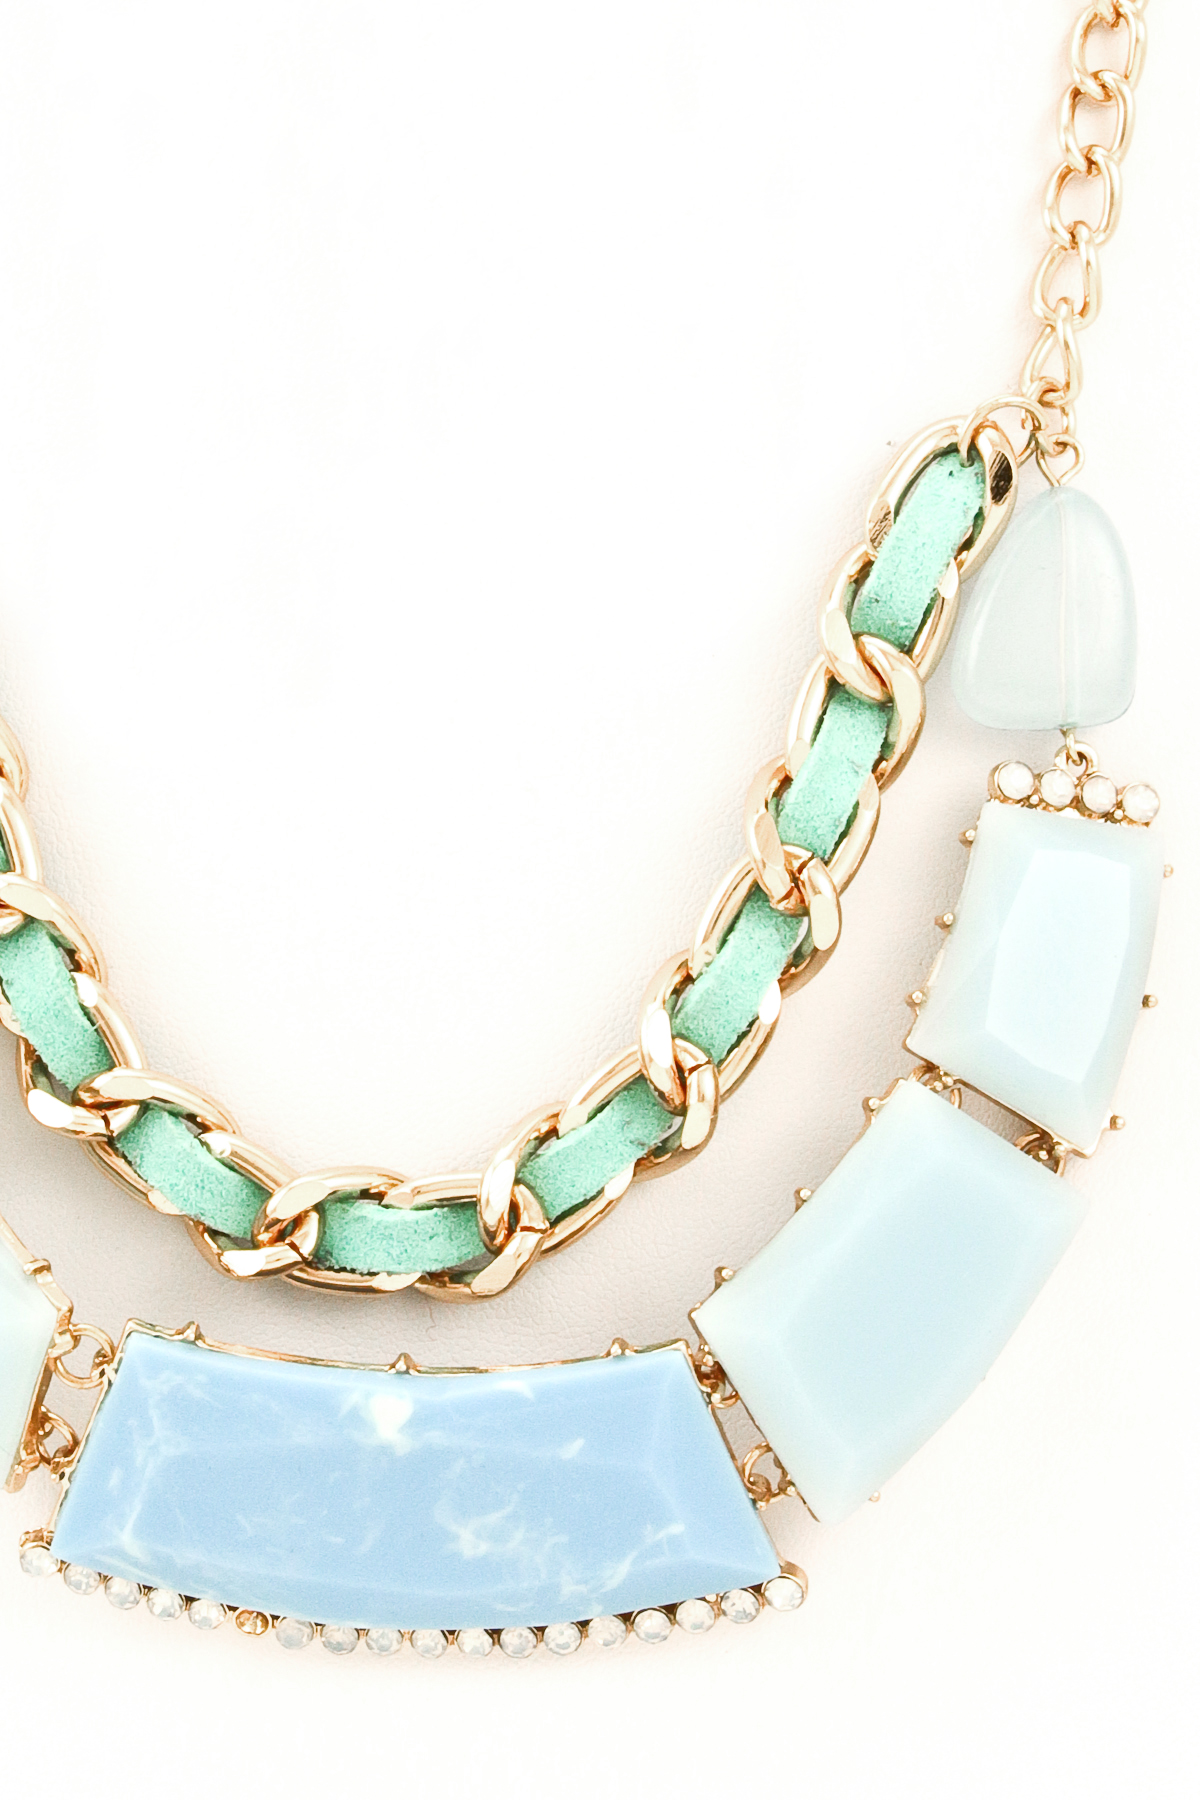 stone and chain necklace set